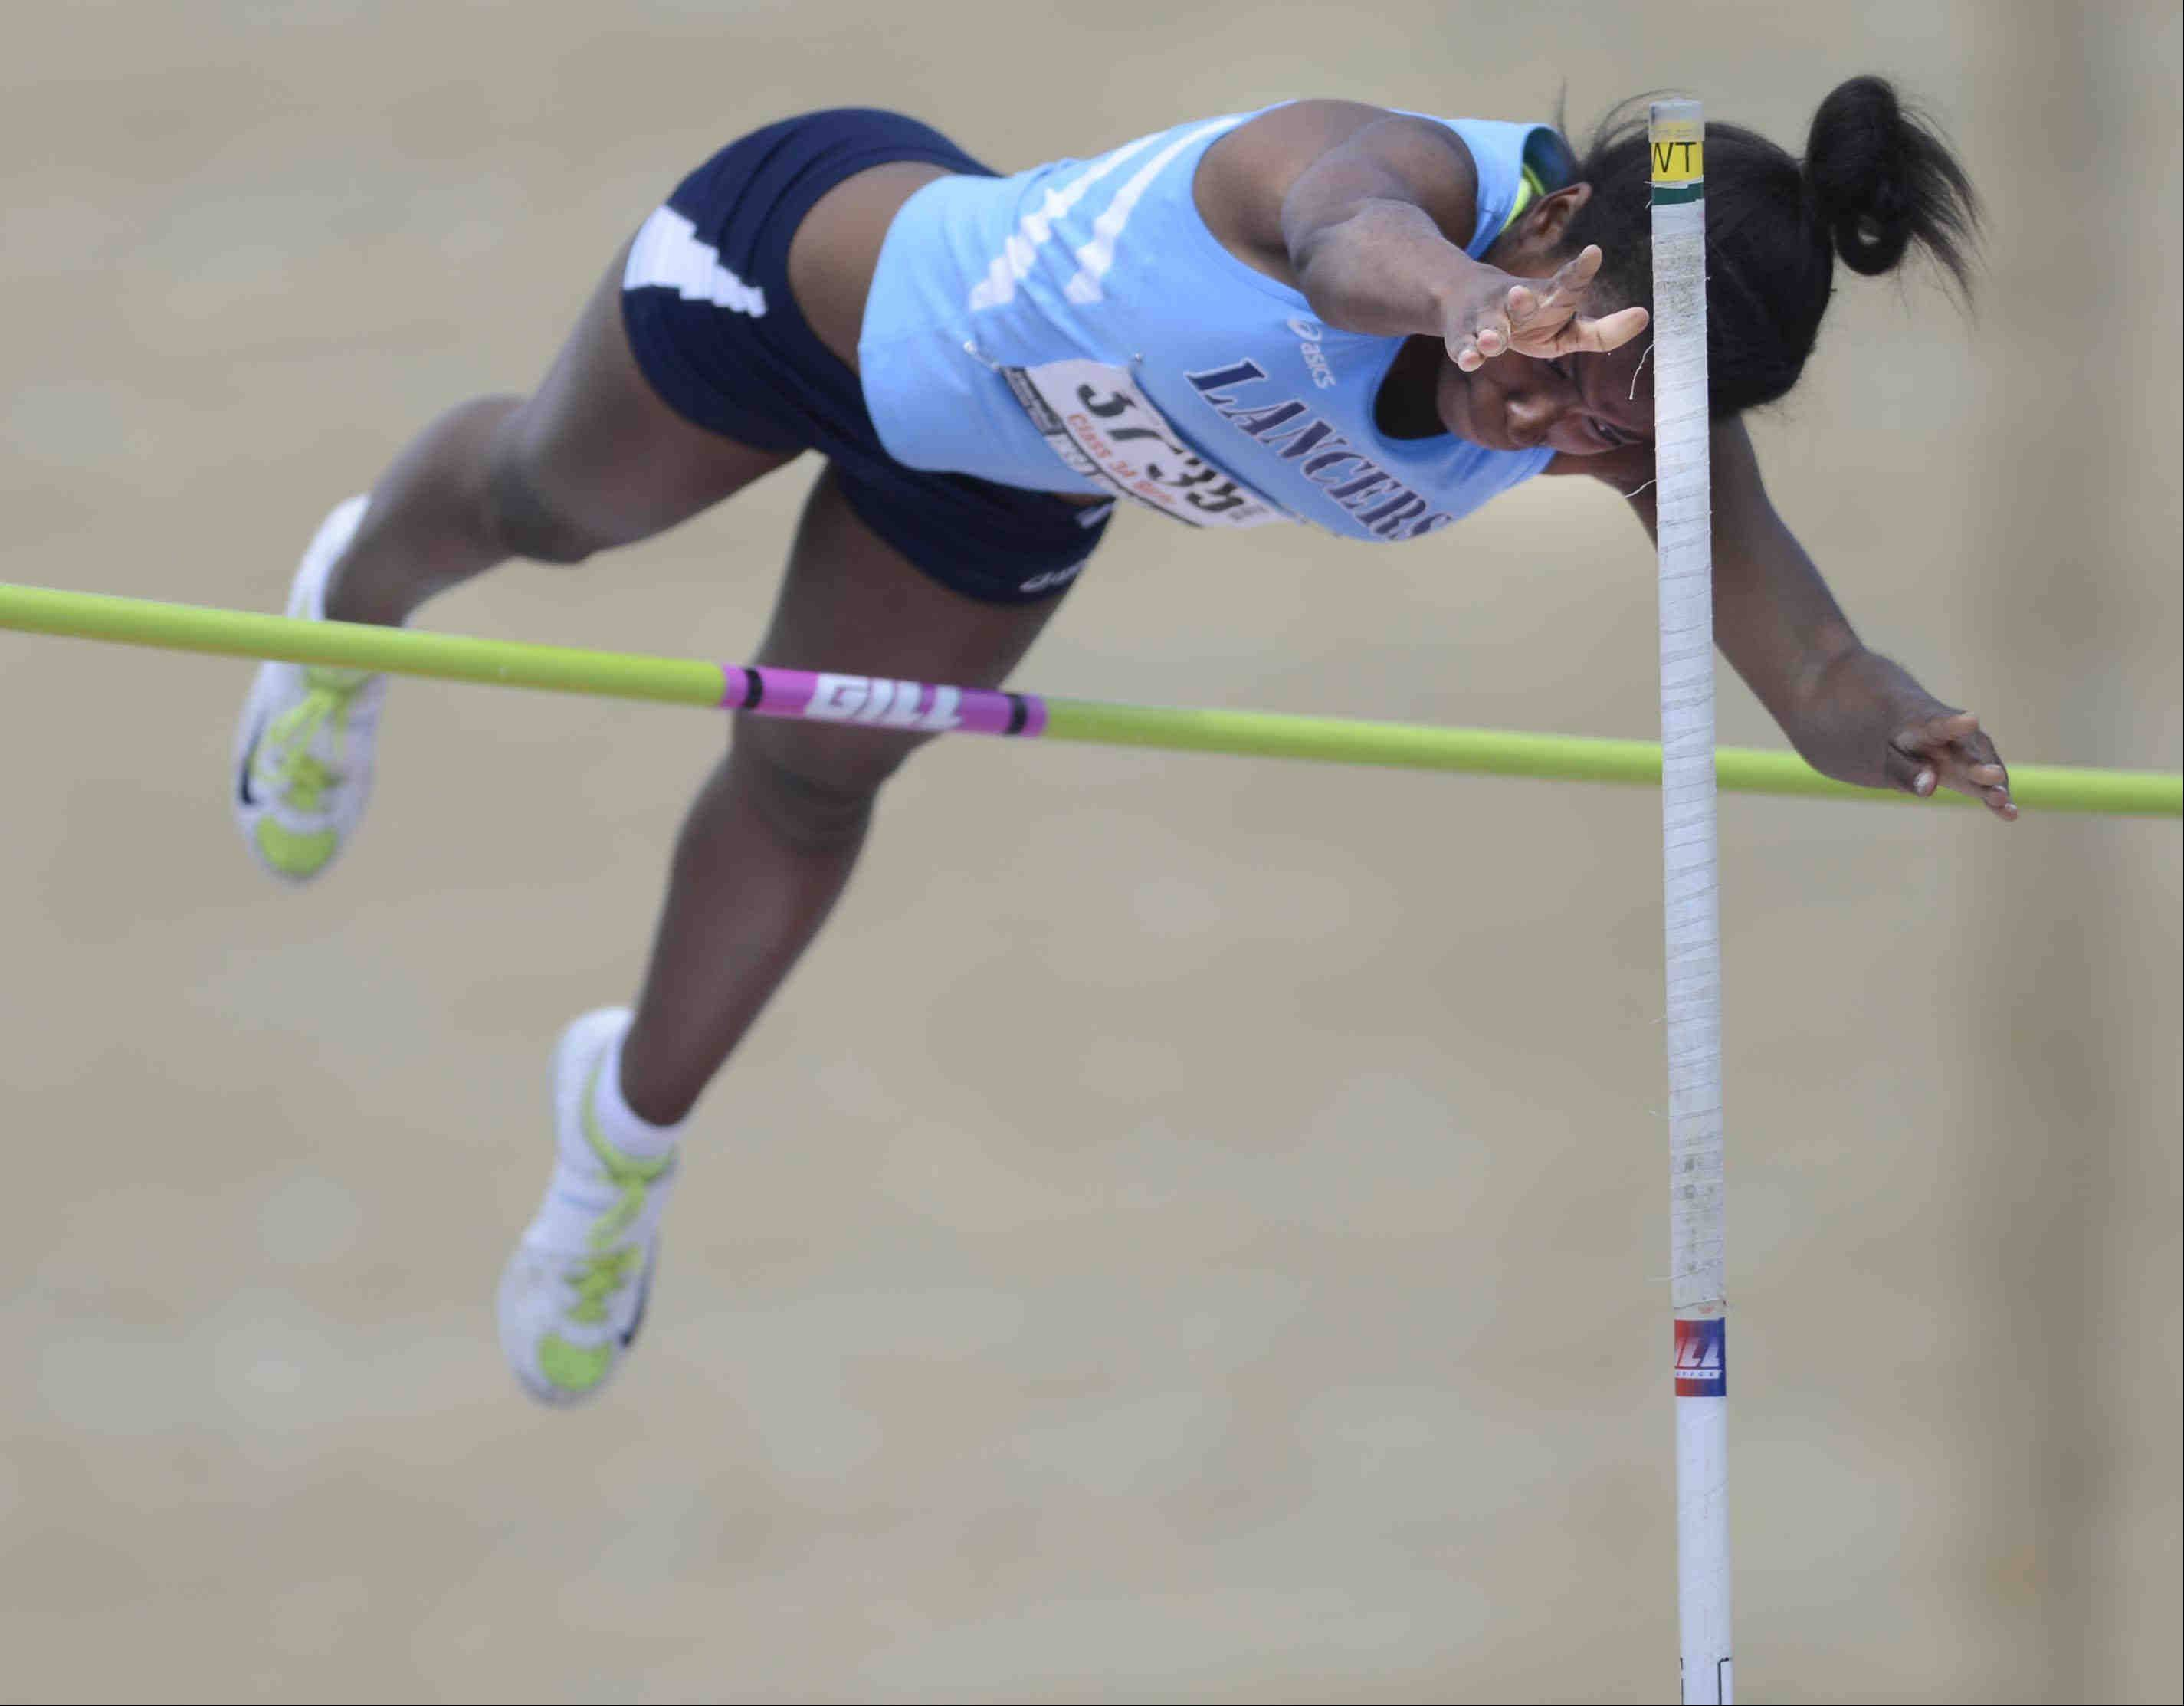 Lake Park's Maya Golliday placed fourth in the pole vault Saturday at the Class 3A girls state track and field finals at O'Brien Stadium at Eastern Illinois University in Charleston.